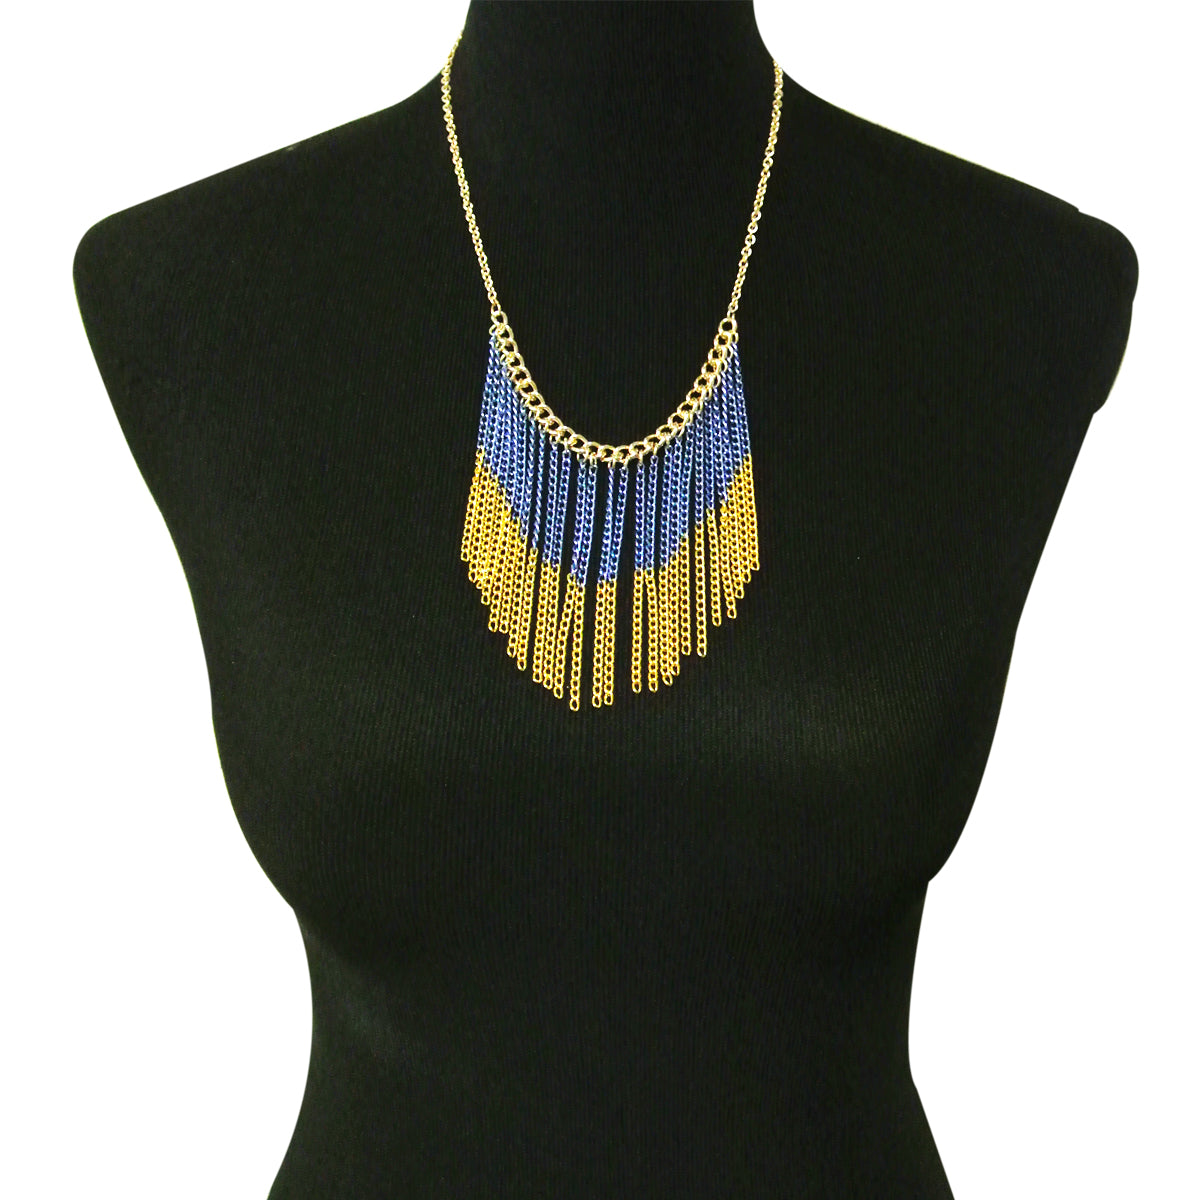 Two Toned Chain Waterfall Bib Necklace